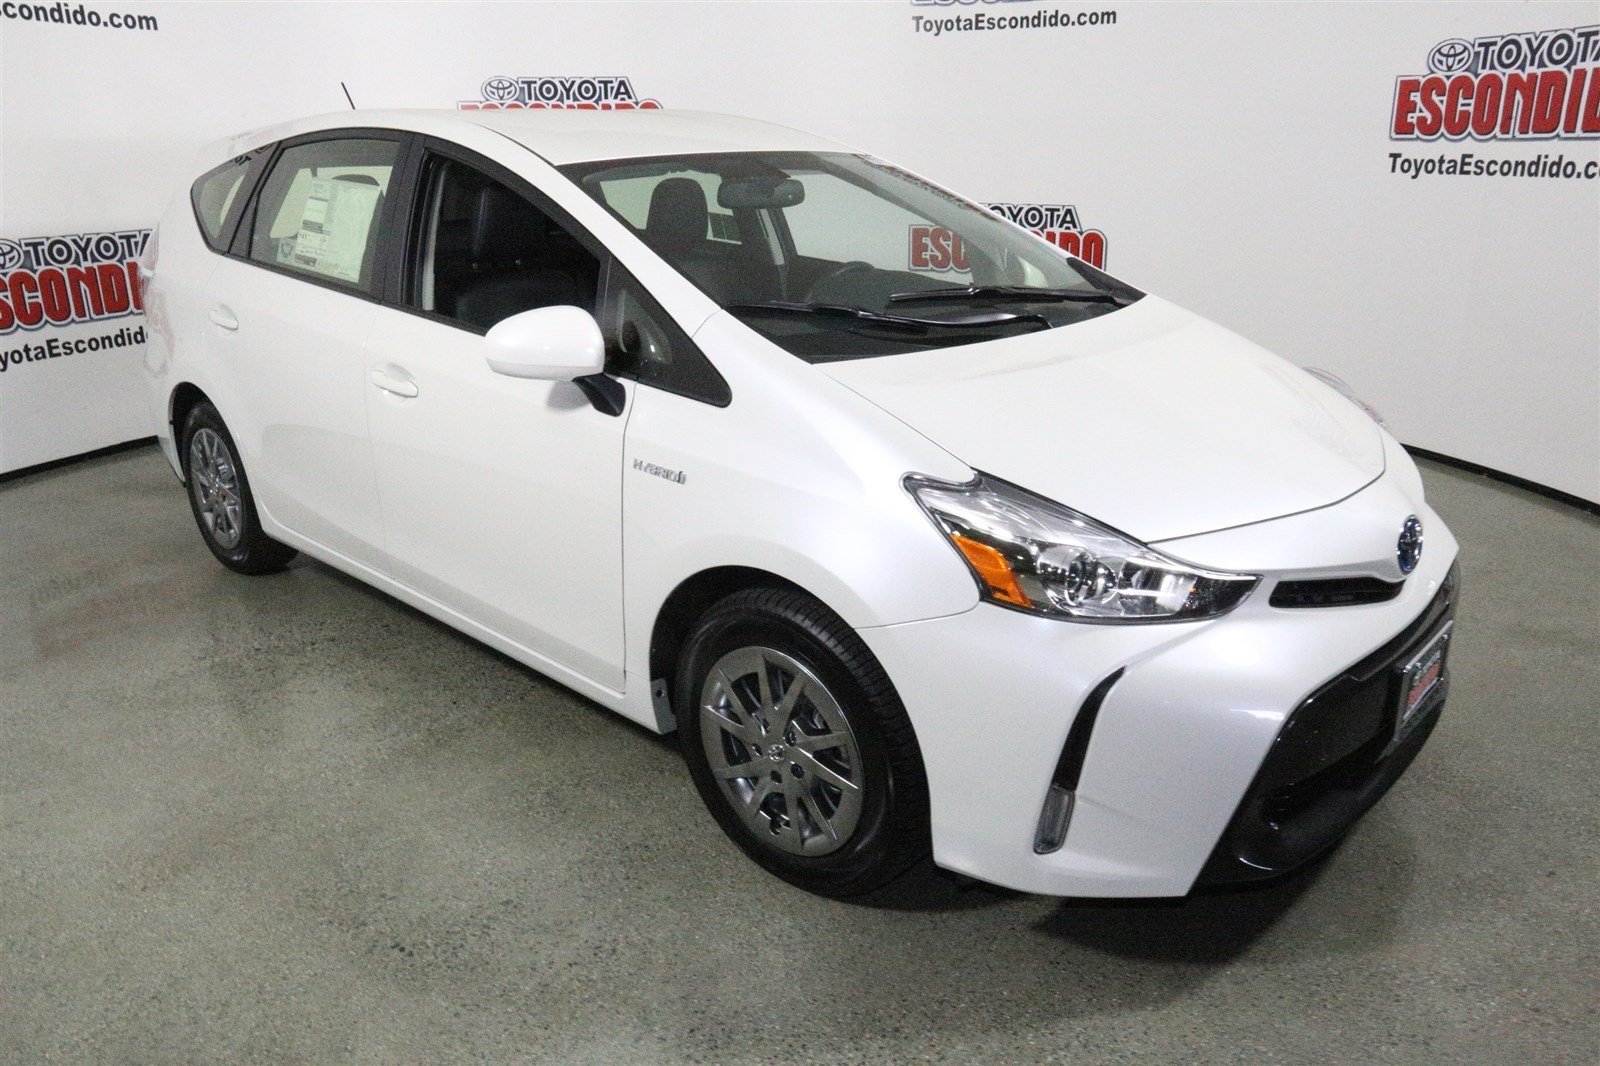 new 2017 toyota prius v four station wagon in escondido hj065022 toyota escondido. Black Bedroom Furniture Sets. Home Design Ideas